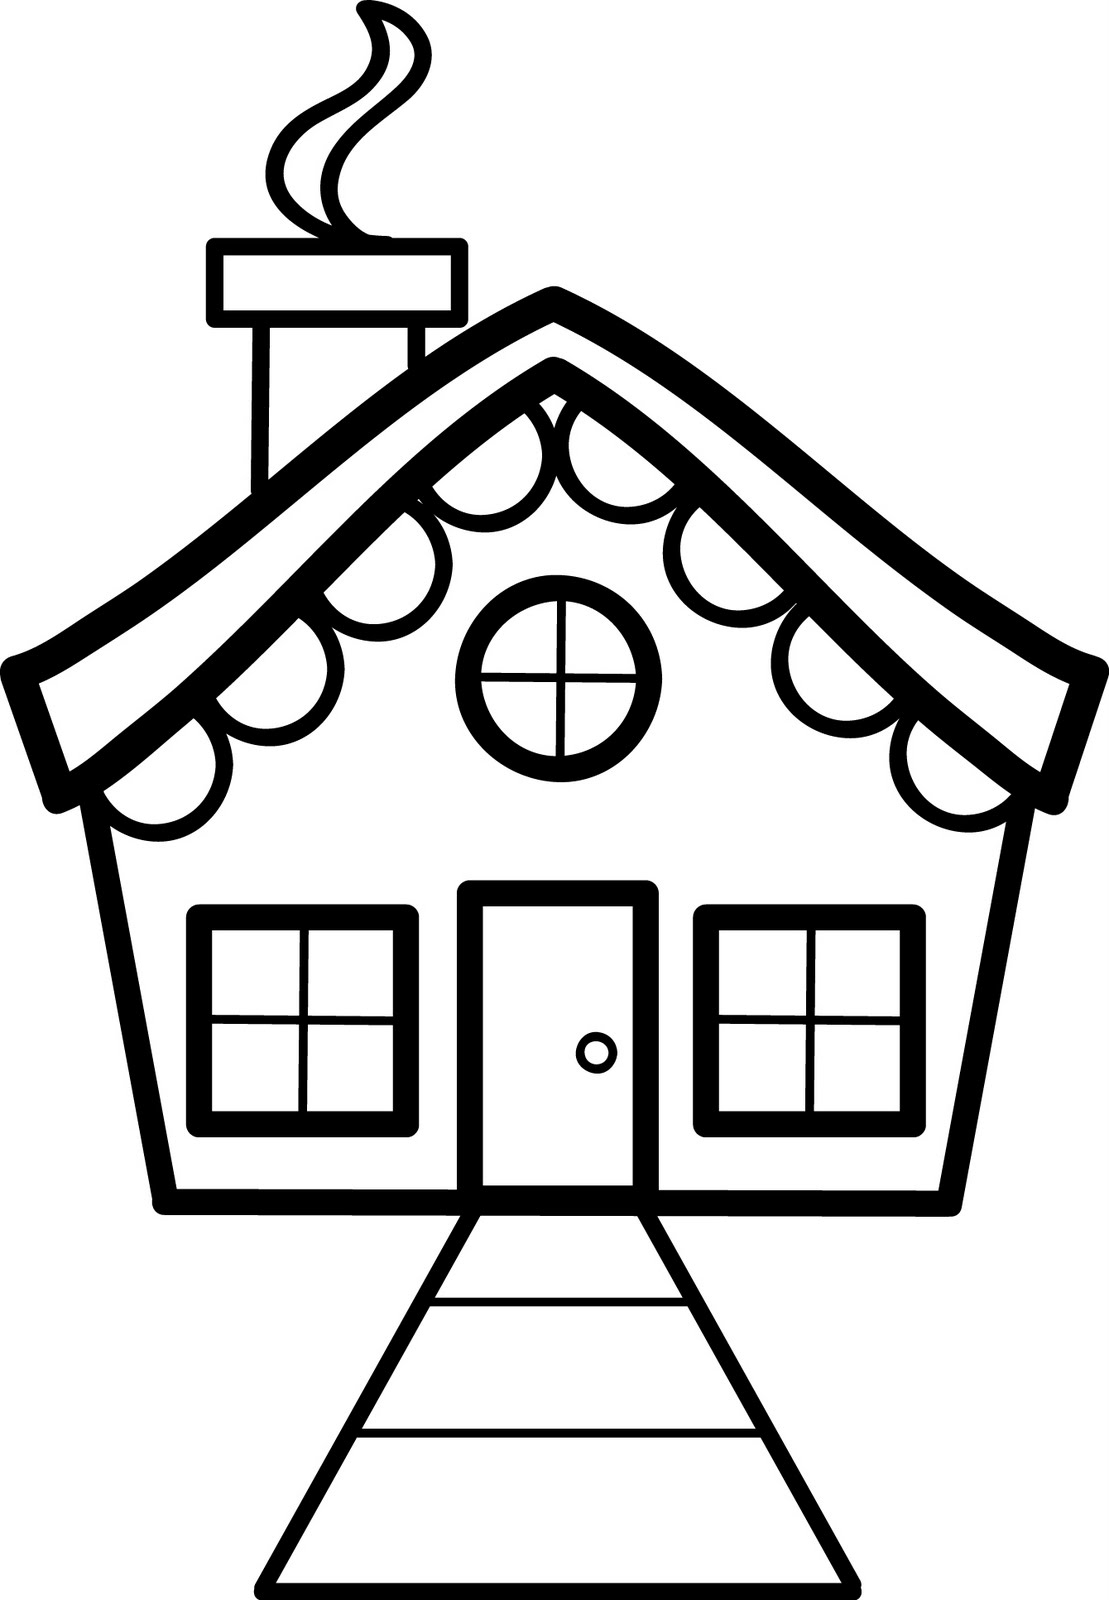 Combinations pr br colouring pages for How to draw a cute house